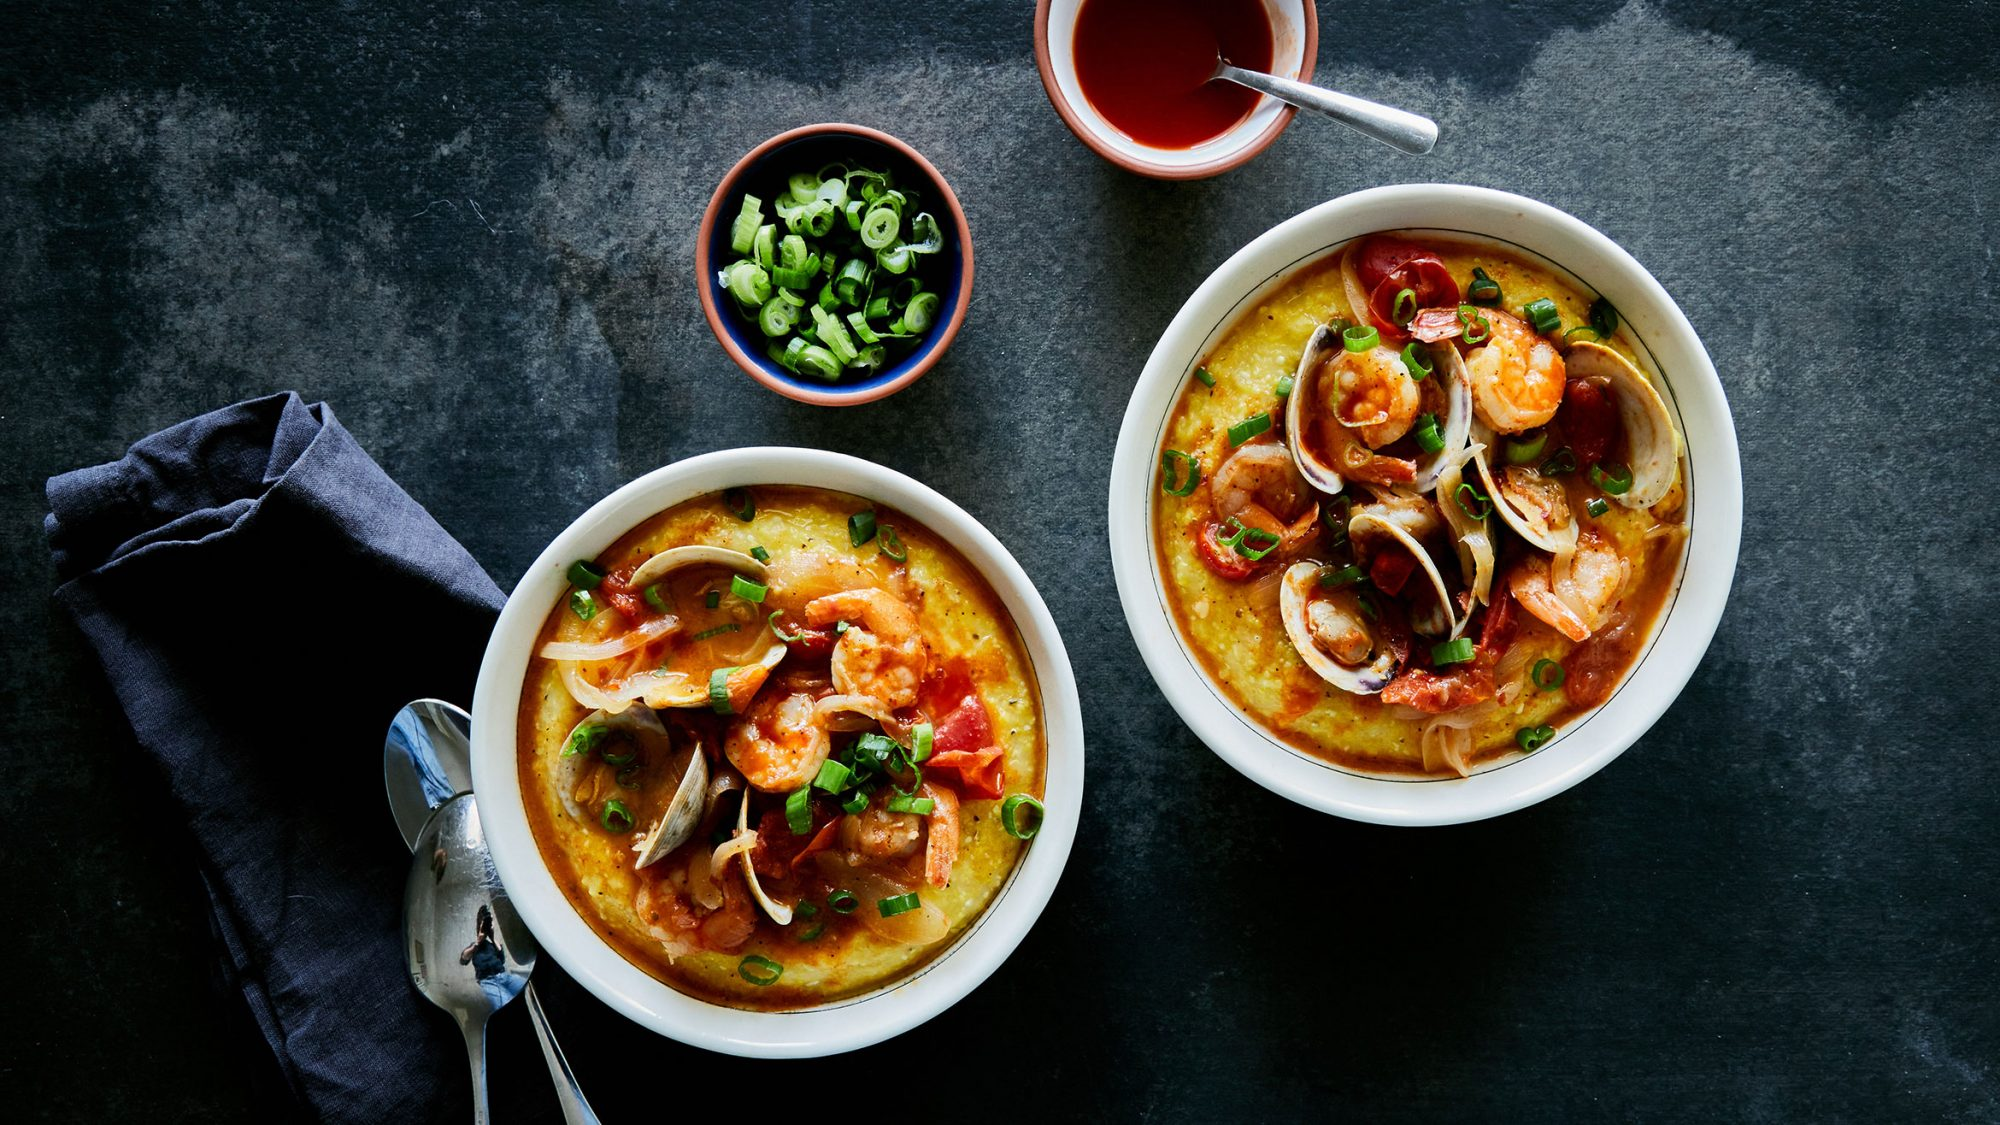 Article-Shrimp-and-Grits-Recipe-Amethyst-Ganaway